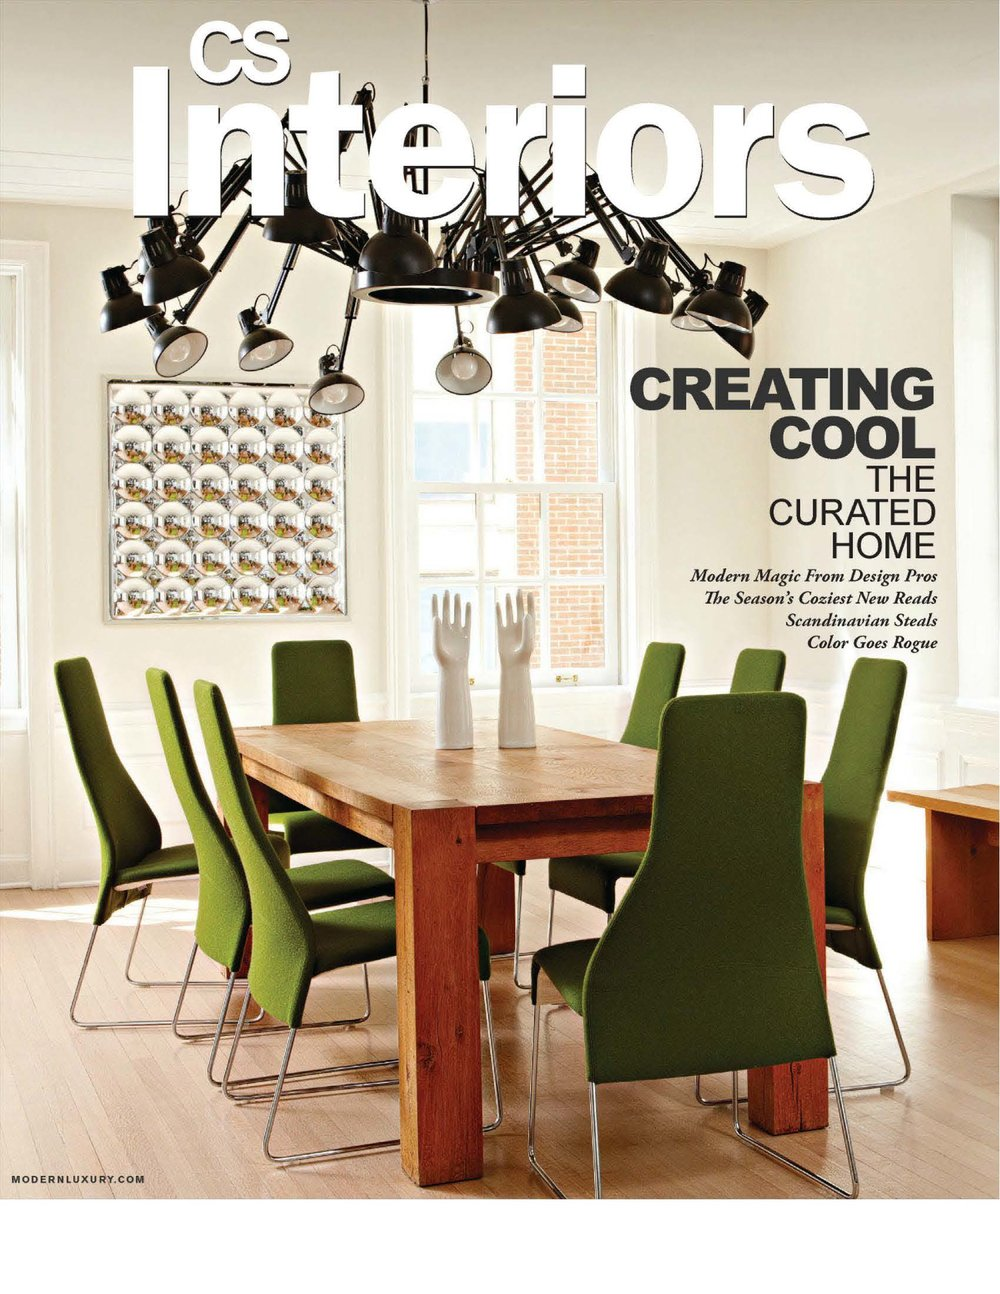 Spare_Quality_CS_Interiors_Fall_2011 cover.jpg